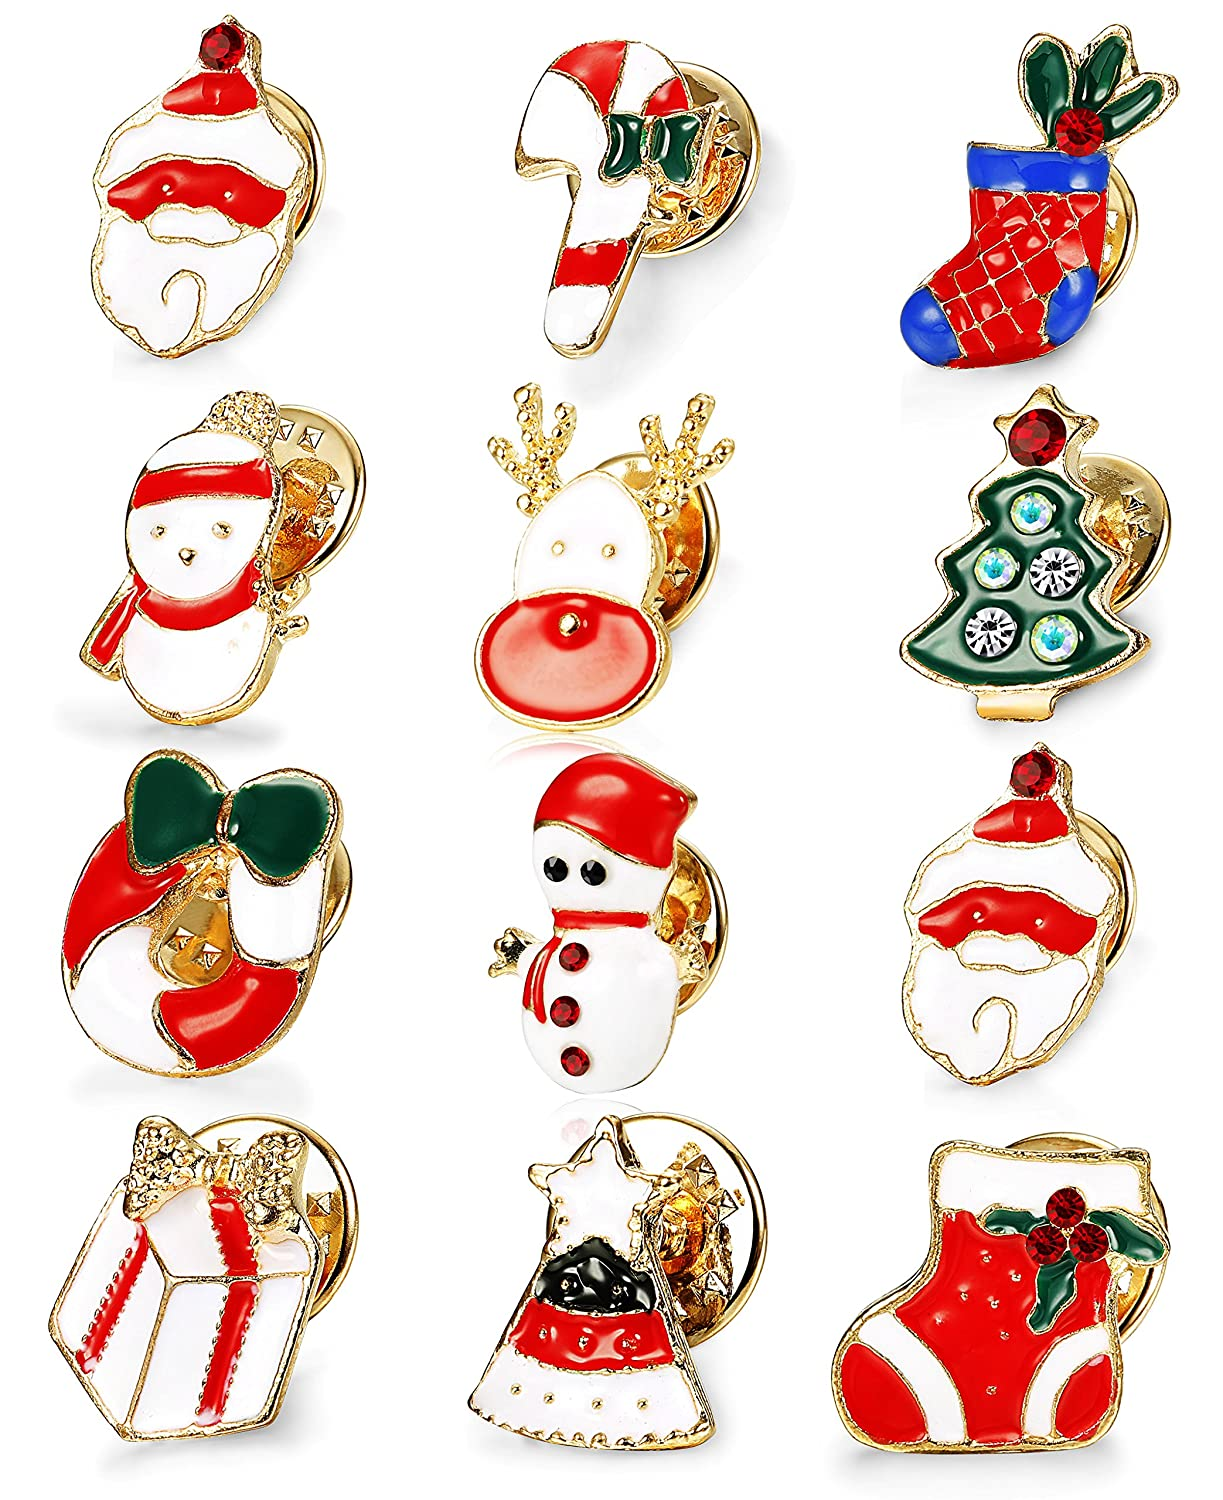 Thunaraz 12pcs Christmas Brooch Pin Set for Women Girls Holiday Brooches Chritmas Gifts B077D1HYFY_US